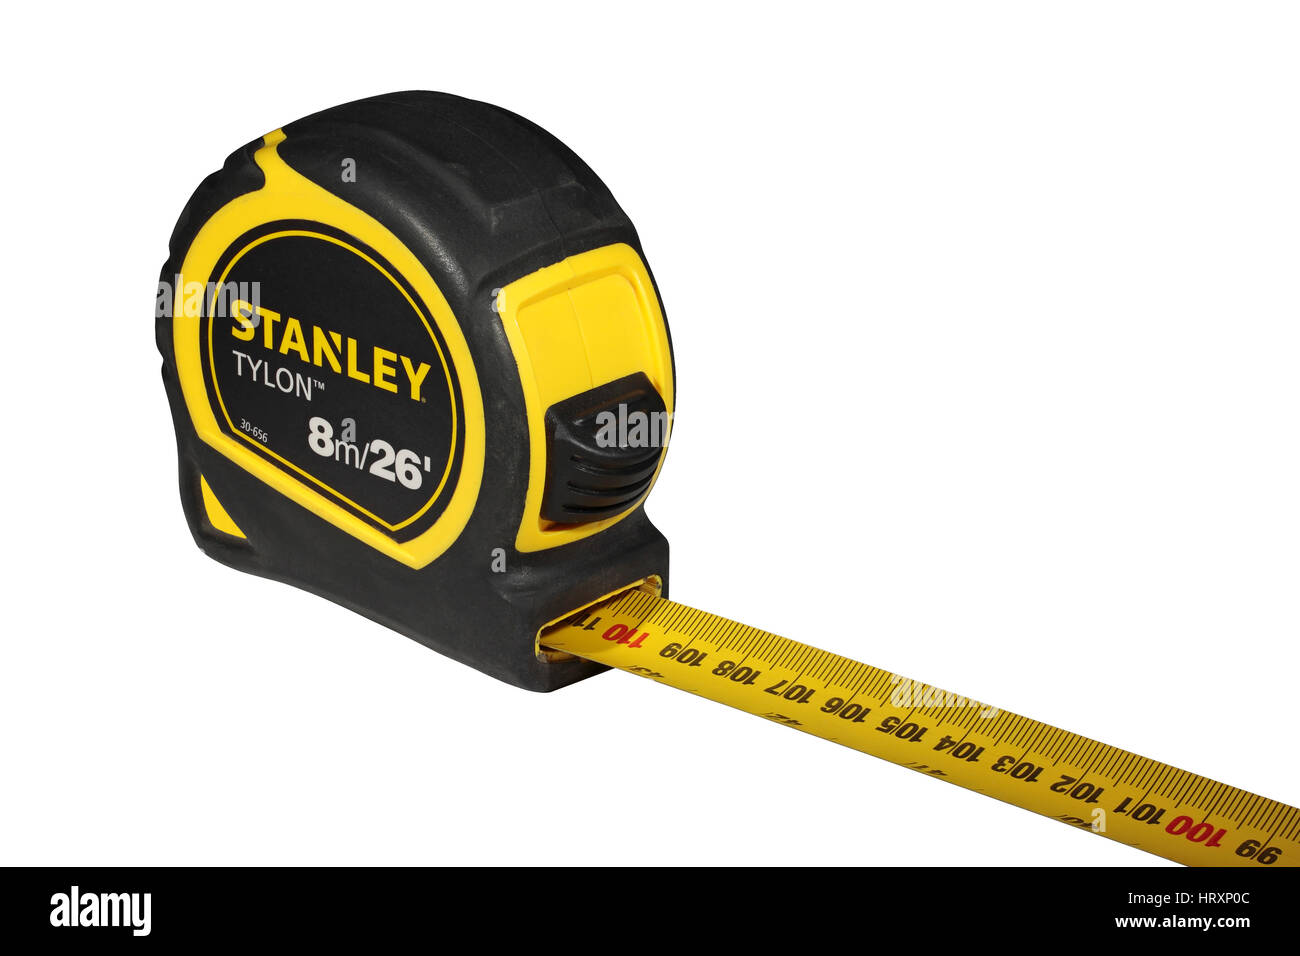 Stanley Tylon yellow 8m 8 metre 26 foot 26 feet retractable steel tape measure isolated on a white background - Stock Image